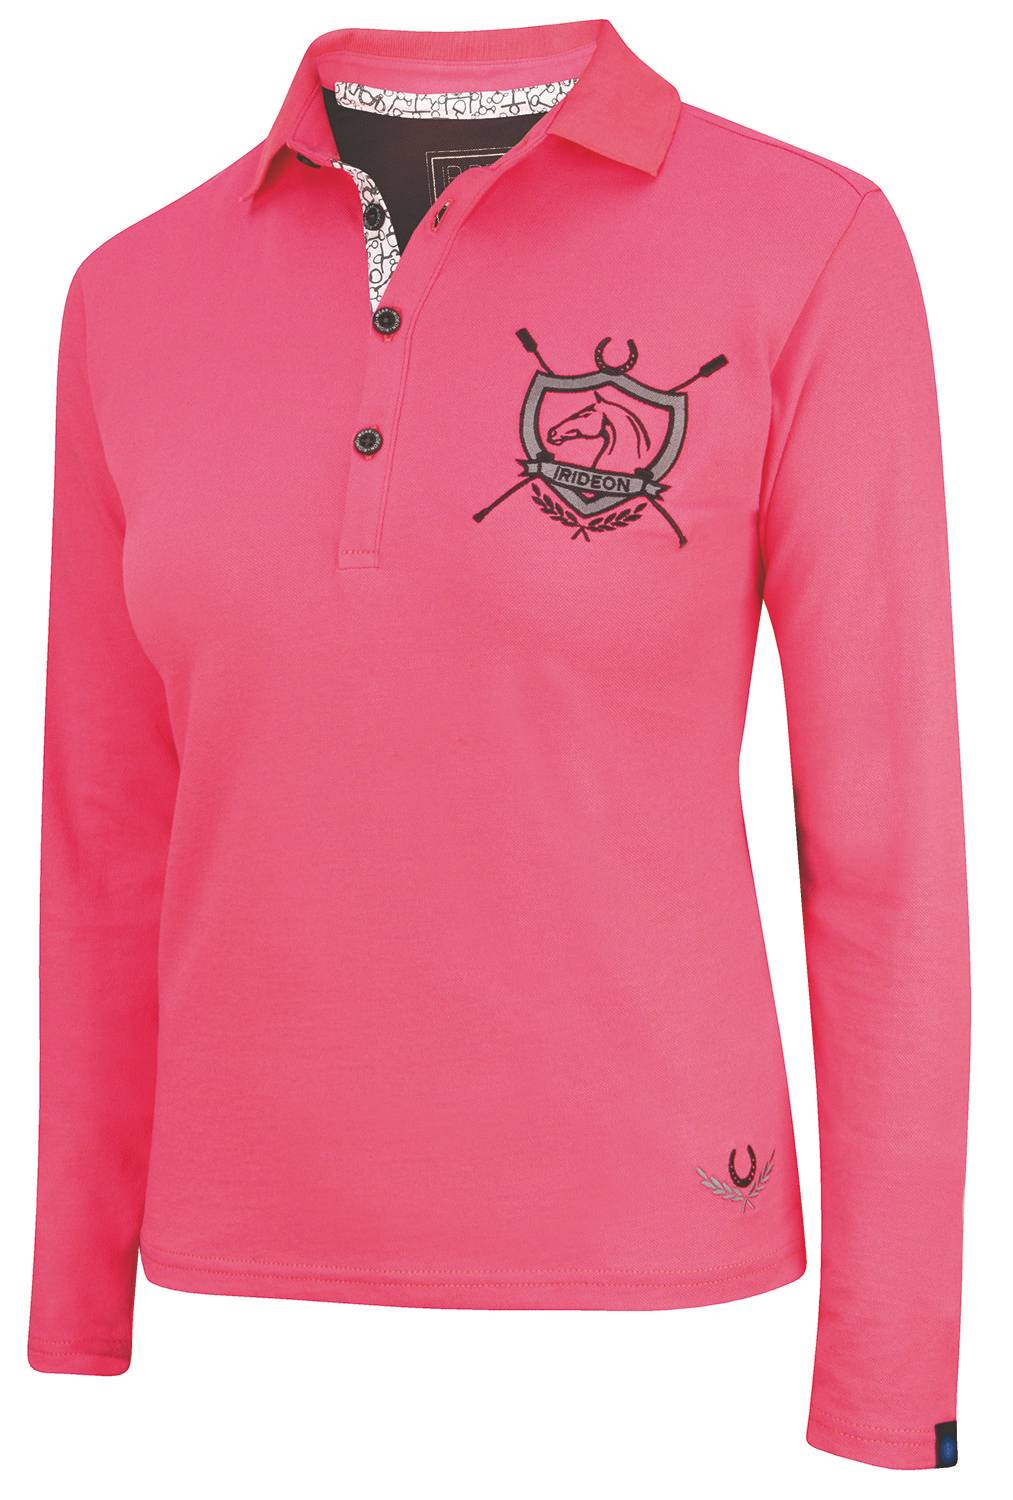 Irideon Kids' Princeton Long Sleeve Polo